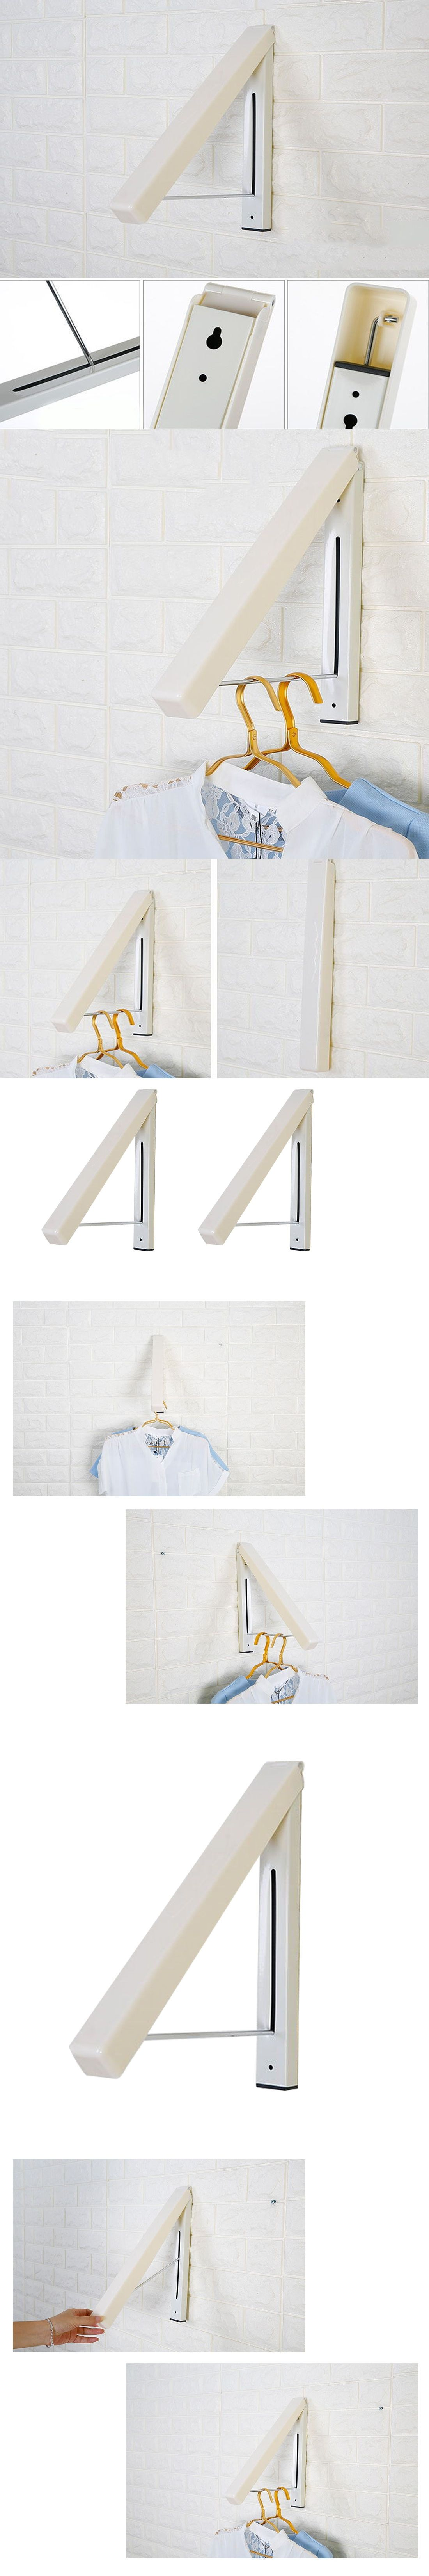 Stainless Steel Wall Hanger Retractable Indoor Clothes Hanger Magic Foldable  Drying Rack Waterproof Clothes Towel Rack